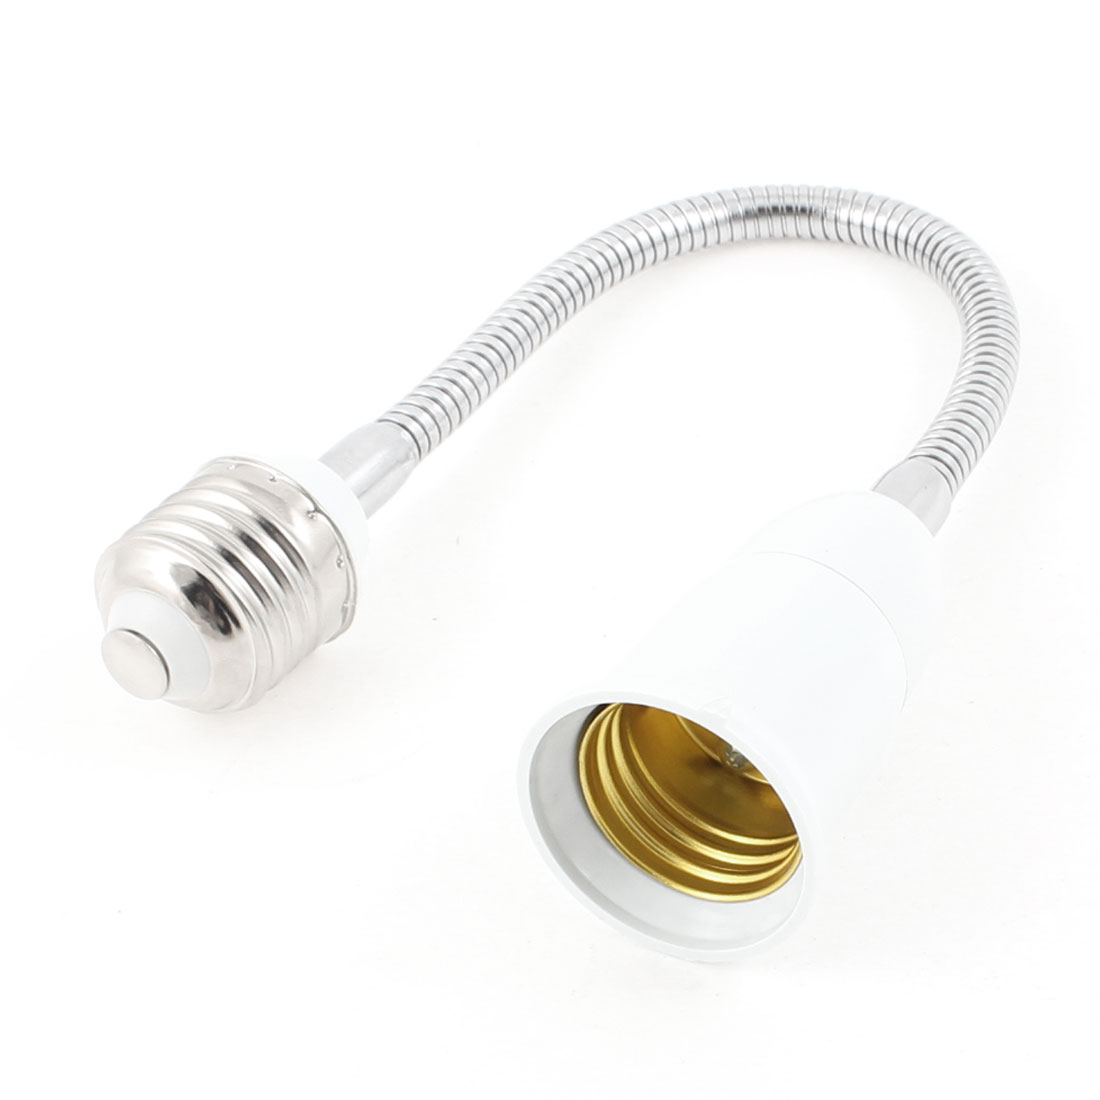 "E27 Light Lamp Bulb Flexible Gooseneck Extension Adapter Converter 11.4"" Long"